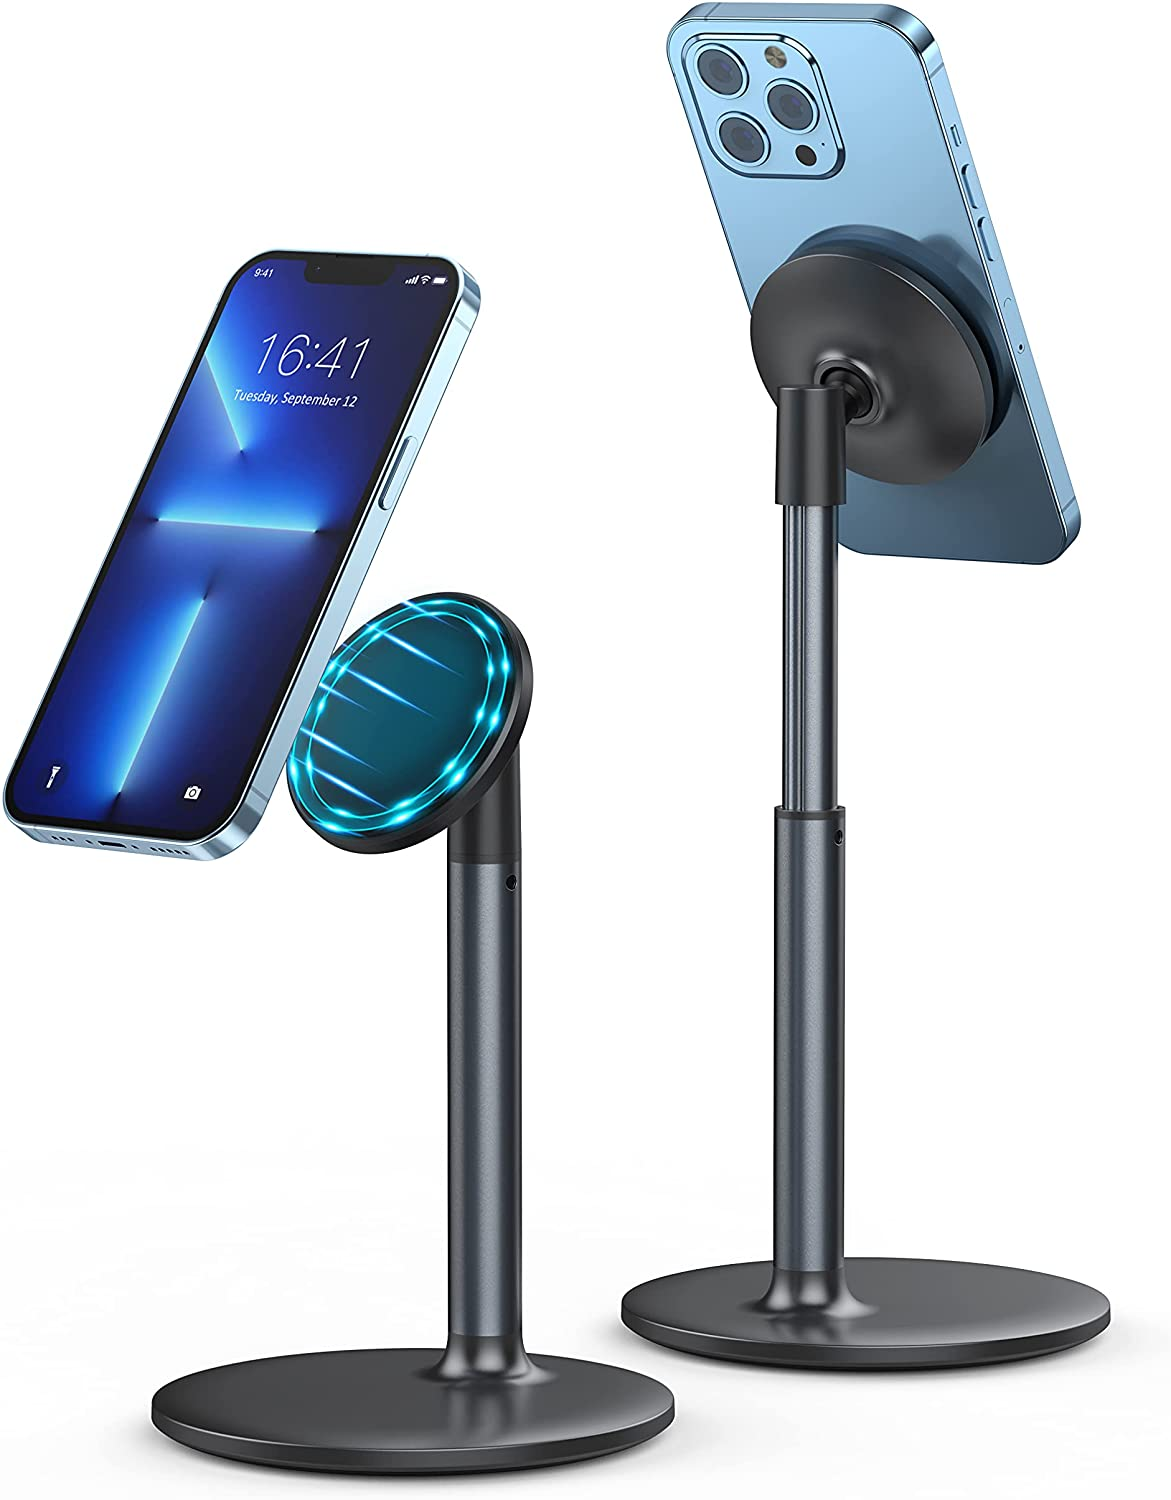 Magnetic Desk Phone Stand for iPhone 13/12 - Phone Holder Dock with 360°Rotation, Height&Tilt Adjustable for Office/Home Compatible with iPhone 13 12/13 12 Pro/13 12 Mini/13 12 Pro Max,MagSafe Case